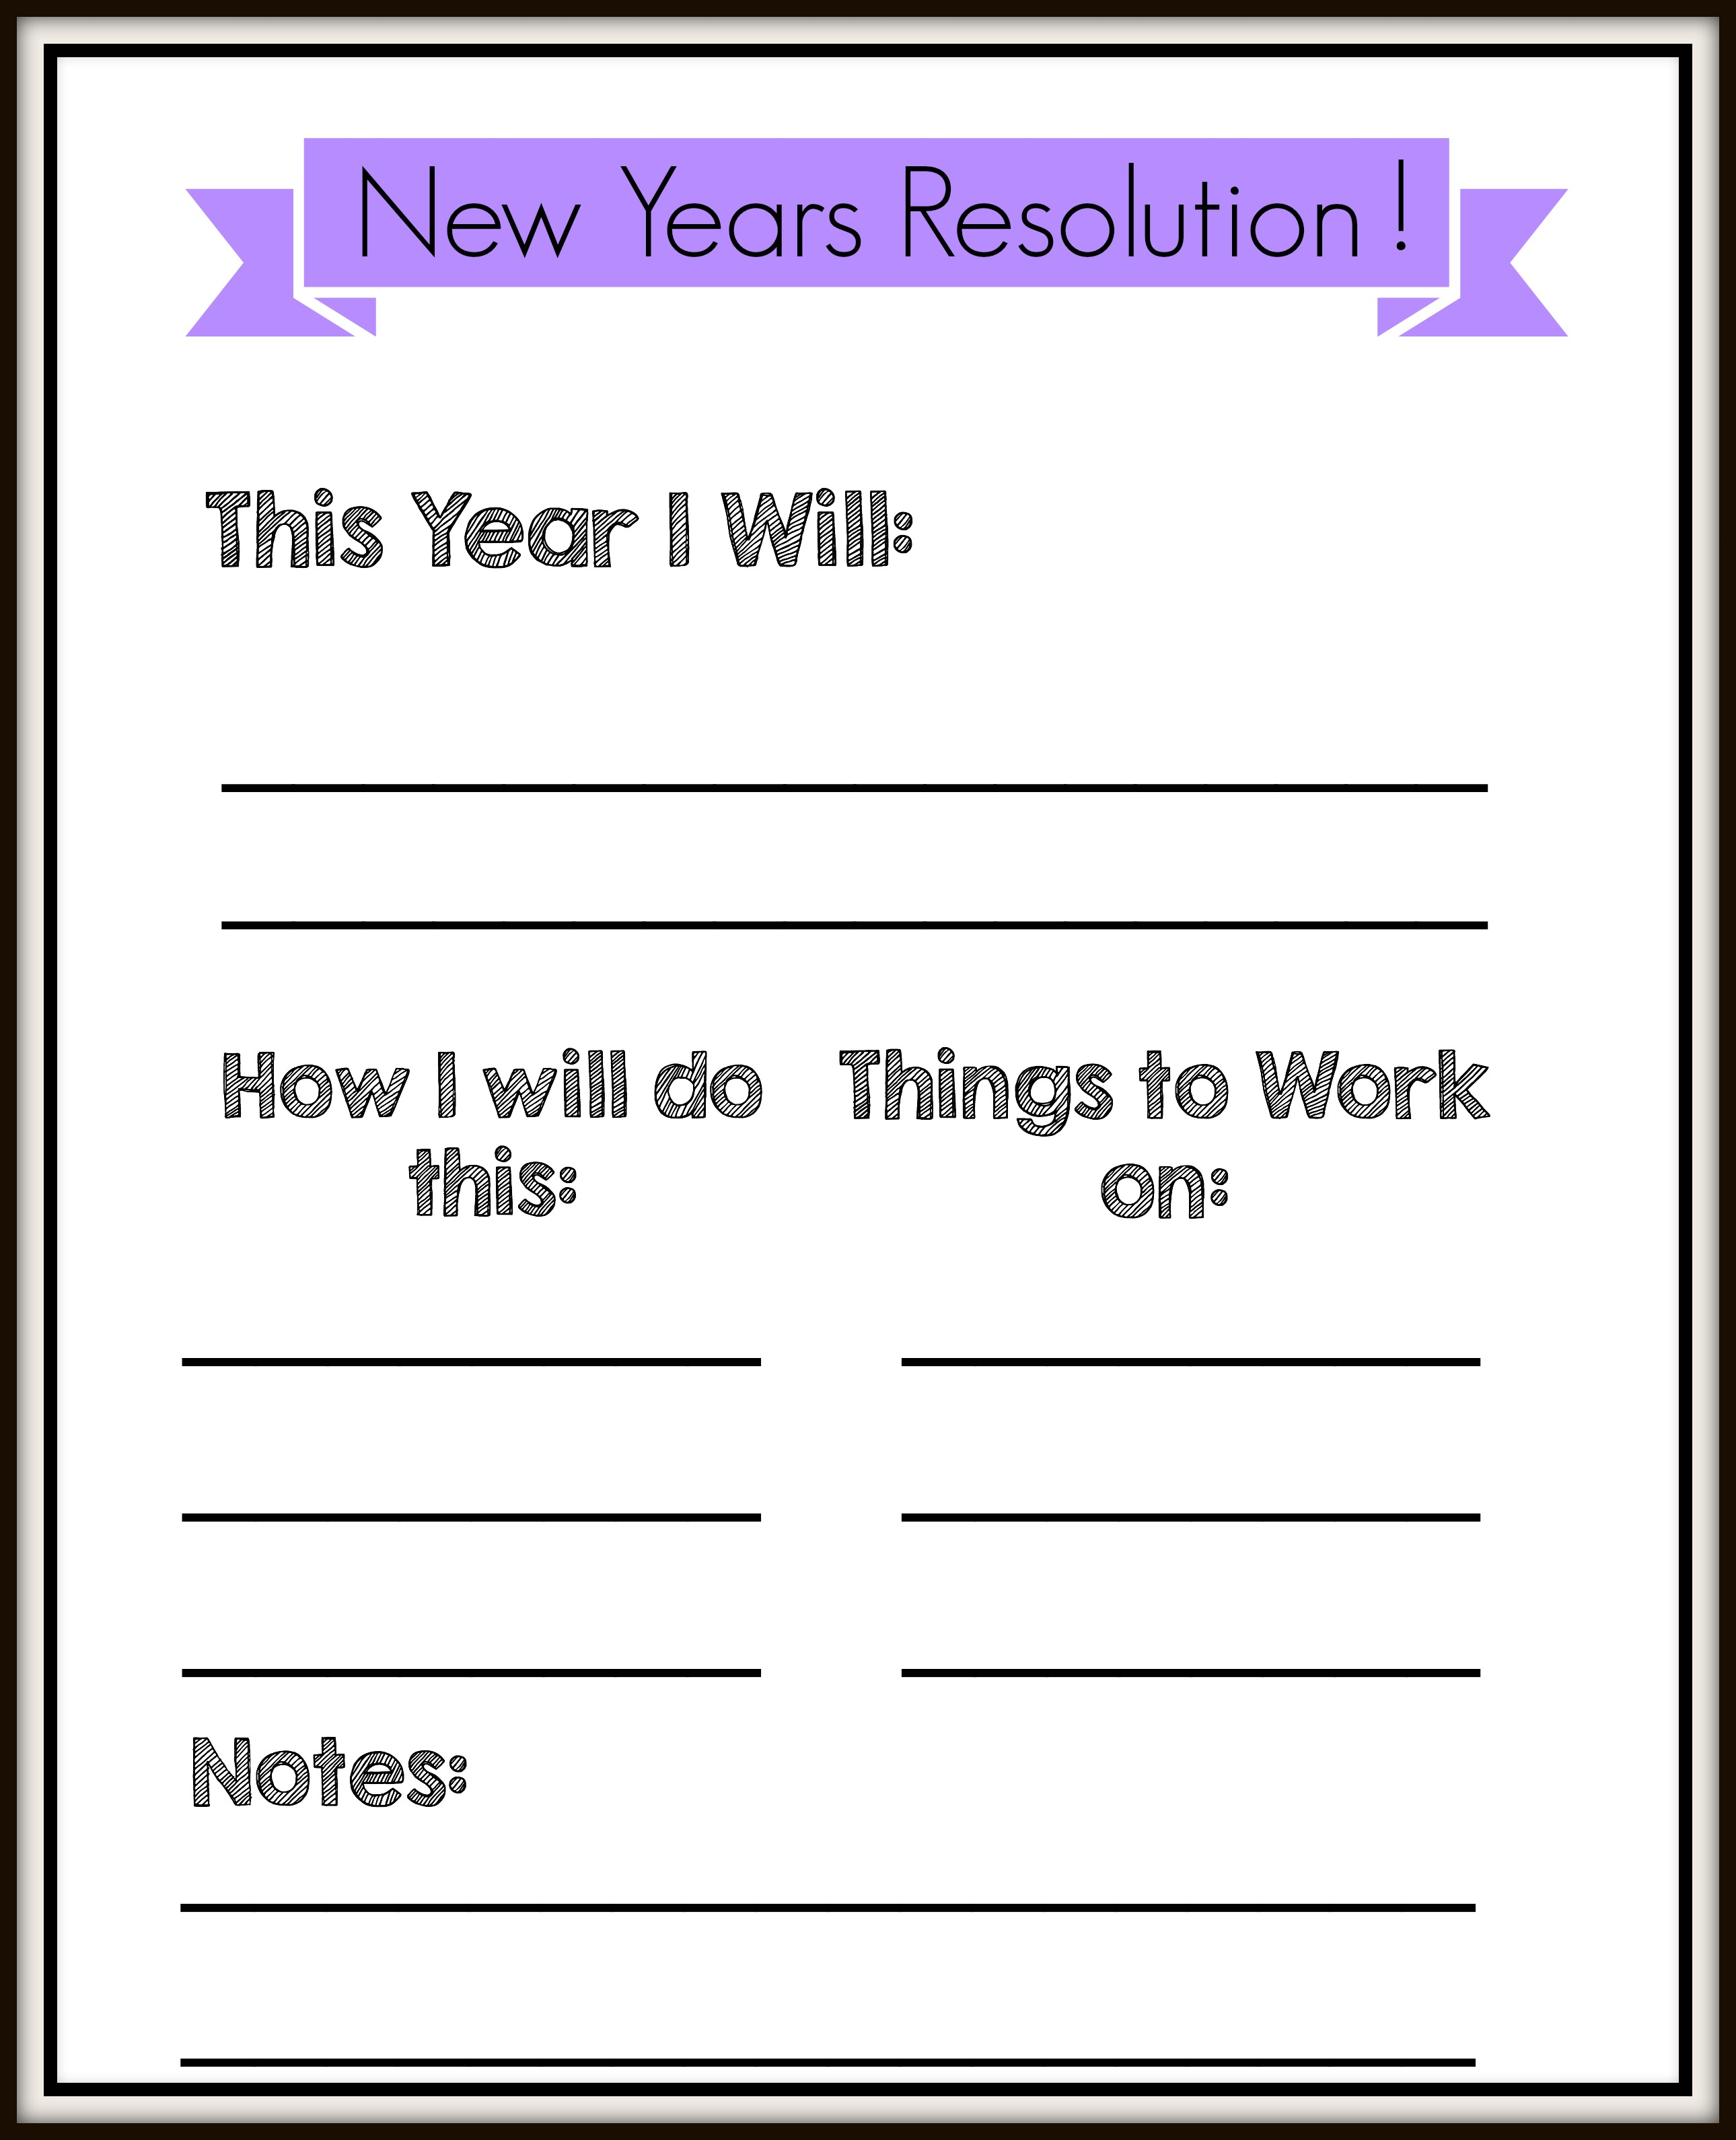 New Years Printable To Start This Year Off Right